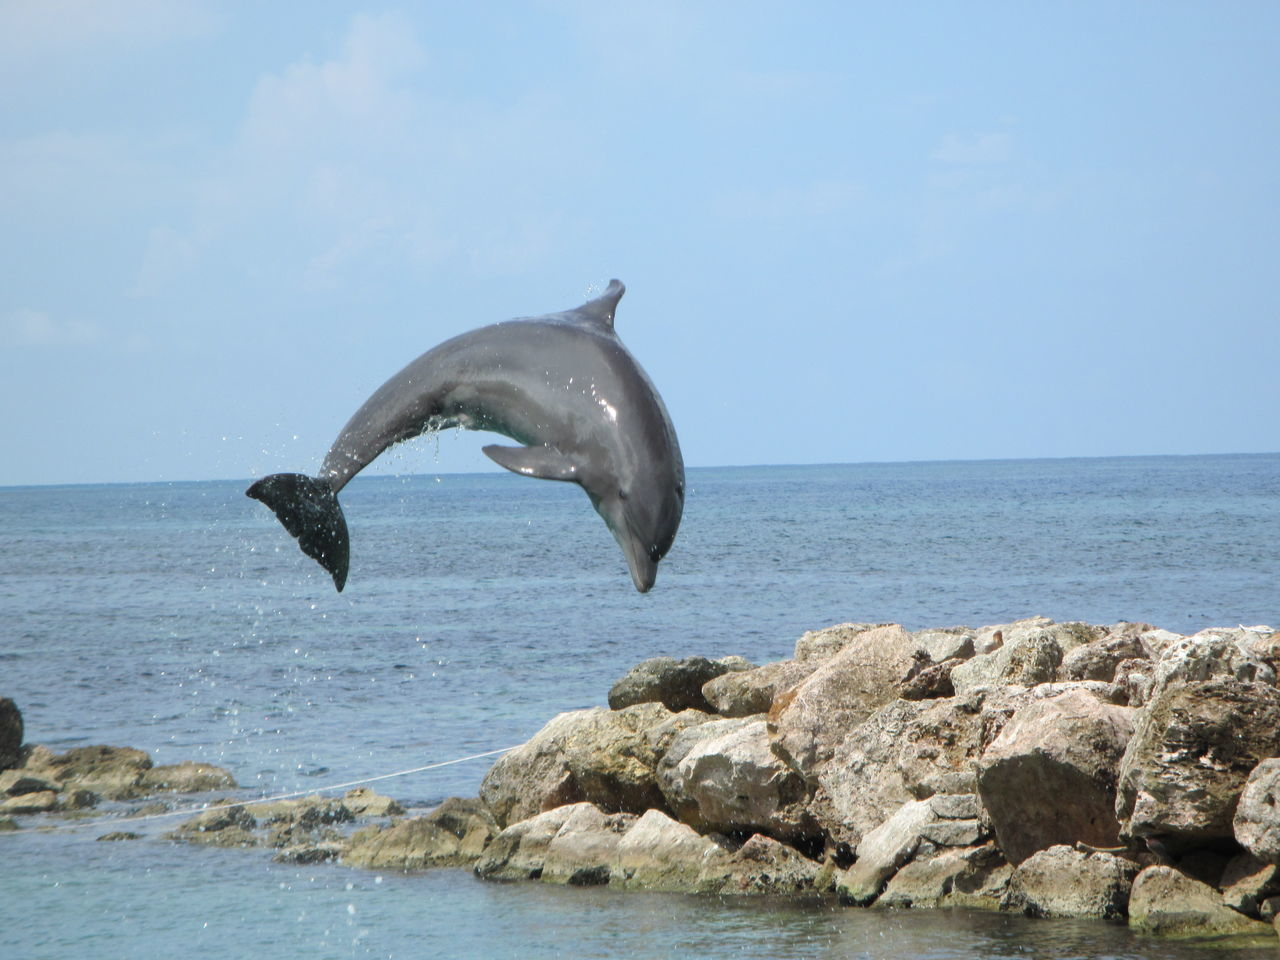 Animal Wildlife Animals In The Wild Dolphin Nature No People One Animal Sea Sea Life Water jumping Dolphin EyeEm Selects